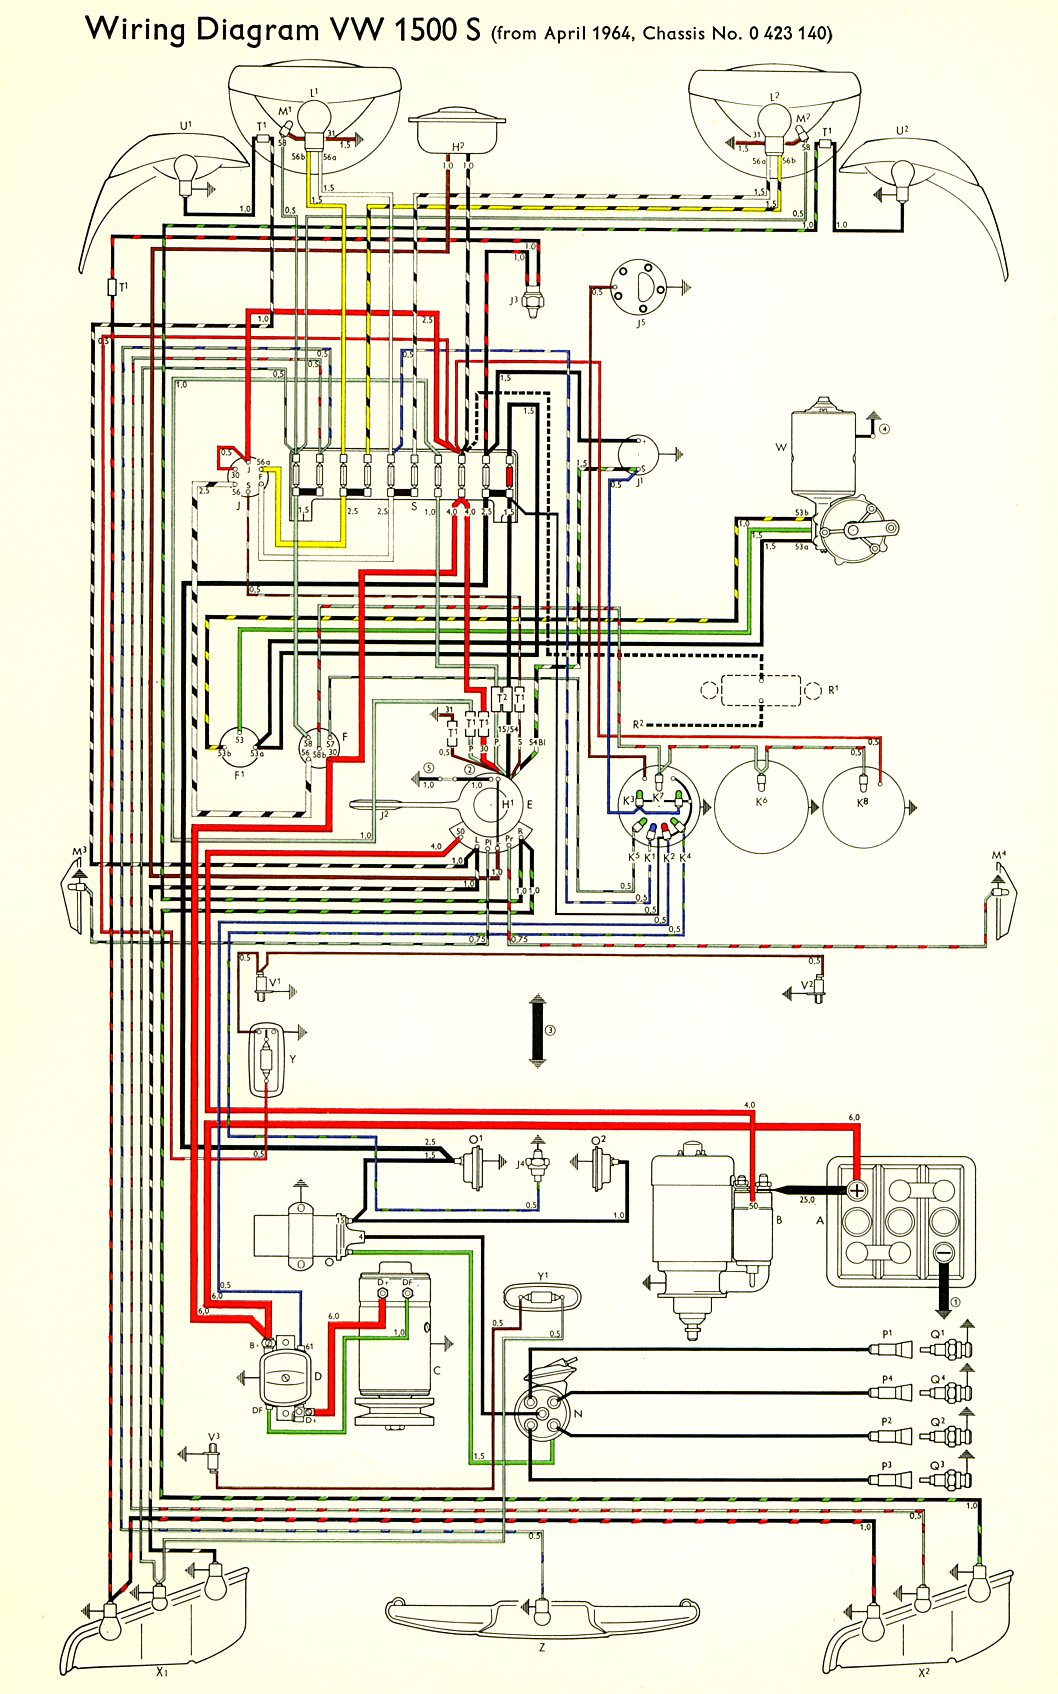 thesamba com type 3 wiring diagrams rh thesamba com 1971 vw type 3 wiring diagram 1964 Type 3 Wiring Diagram